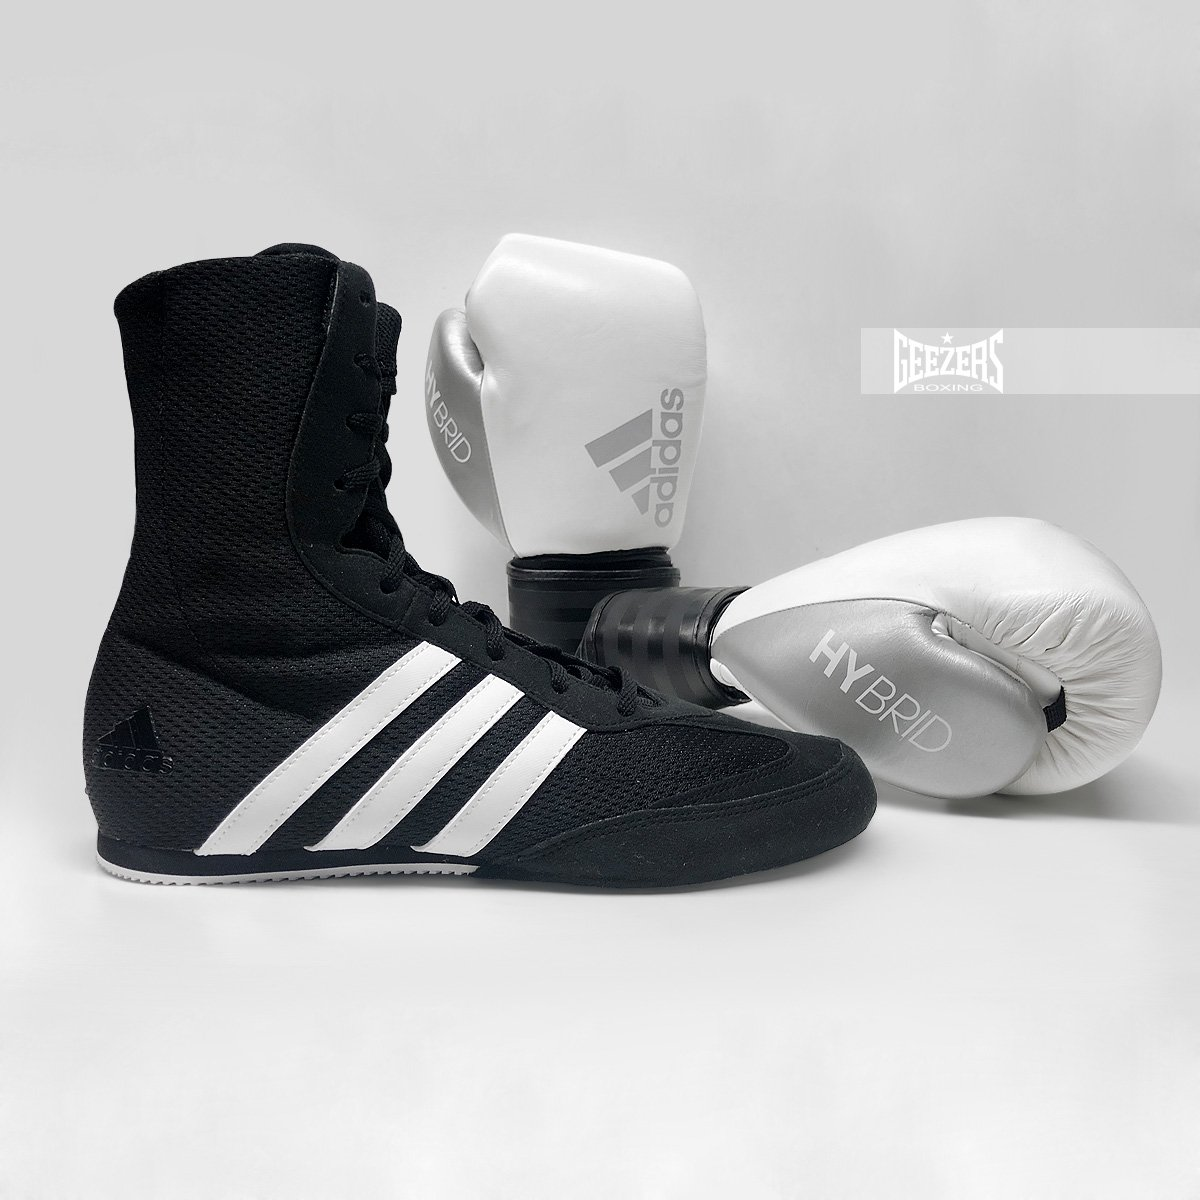 ee344d3bb0dc The perfect combo for beginners. https   www.geezersboxing.co.uk footwear  adidas-box-hog-boxing-boot-black-white … ...